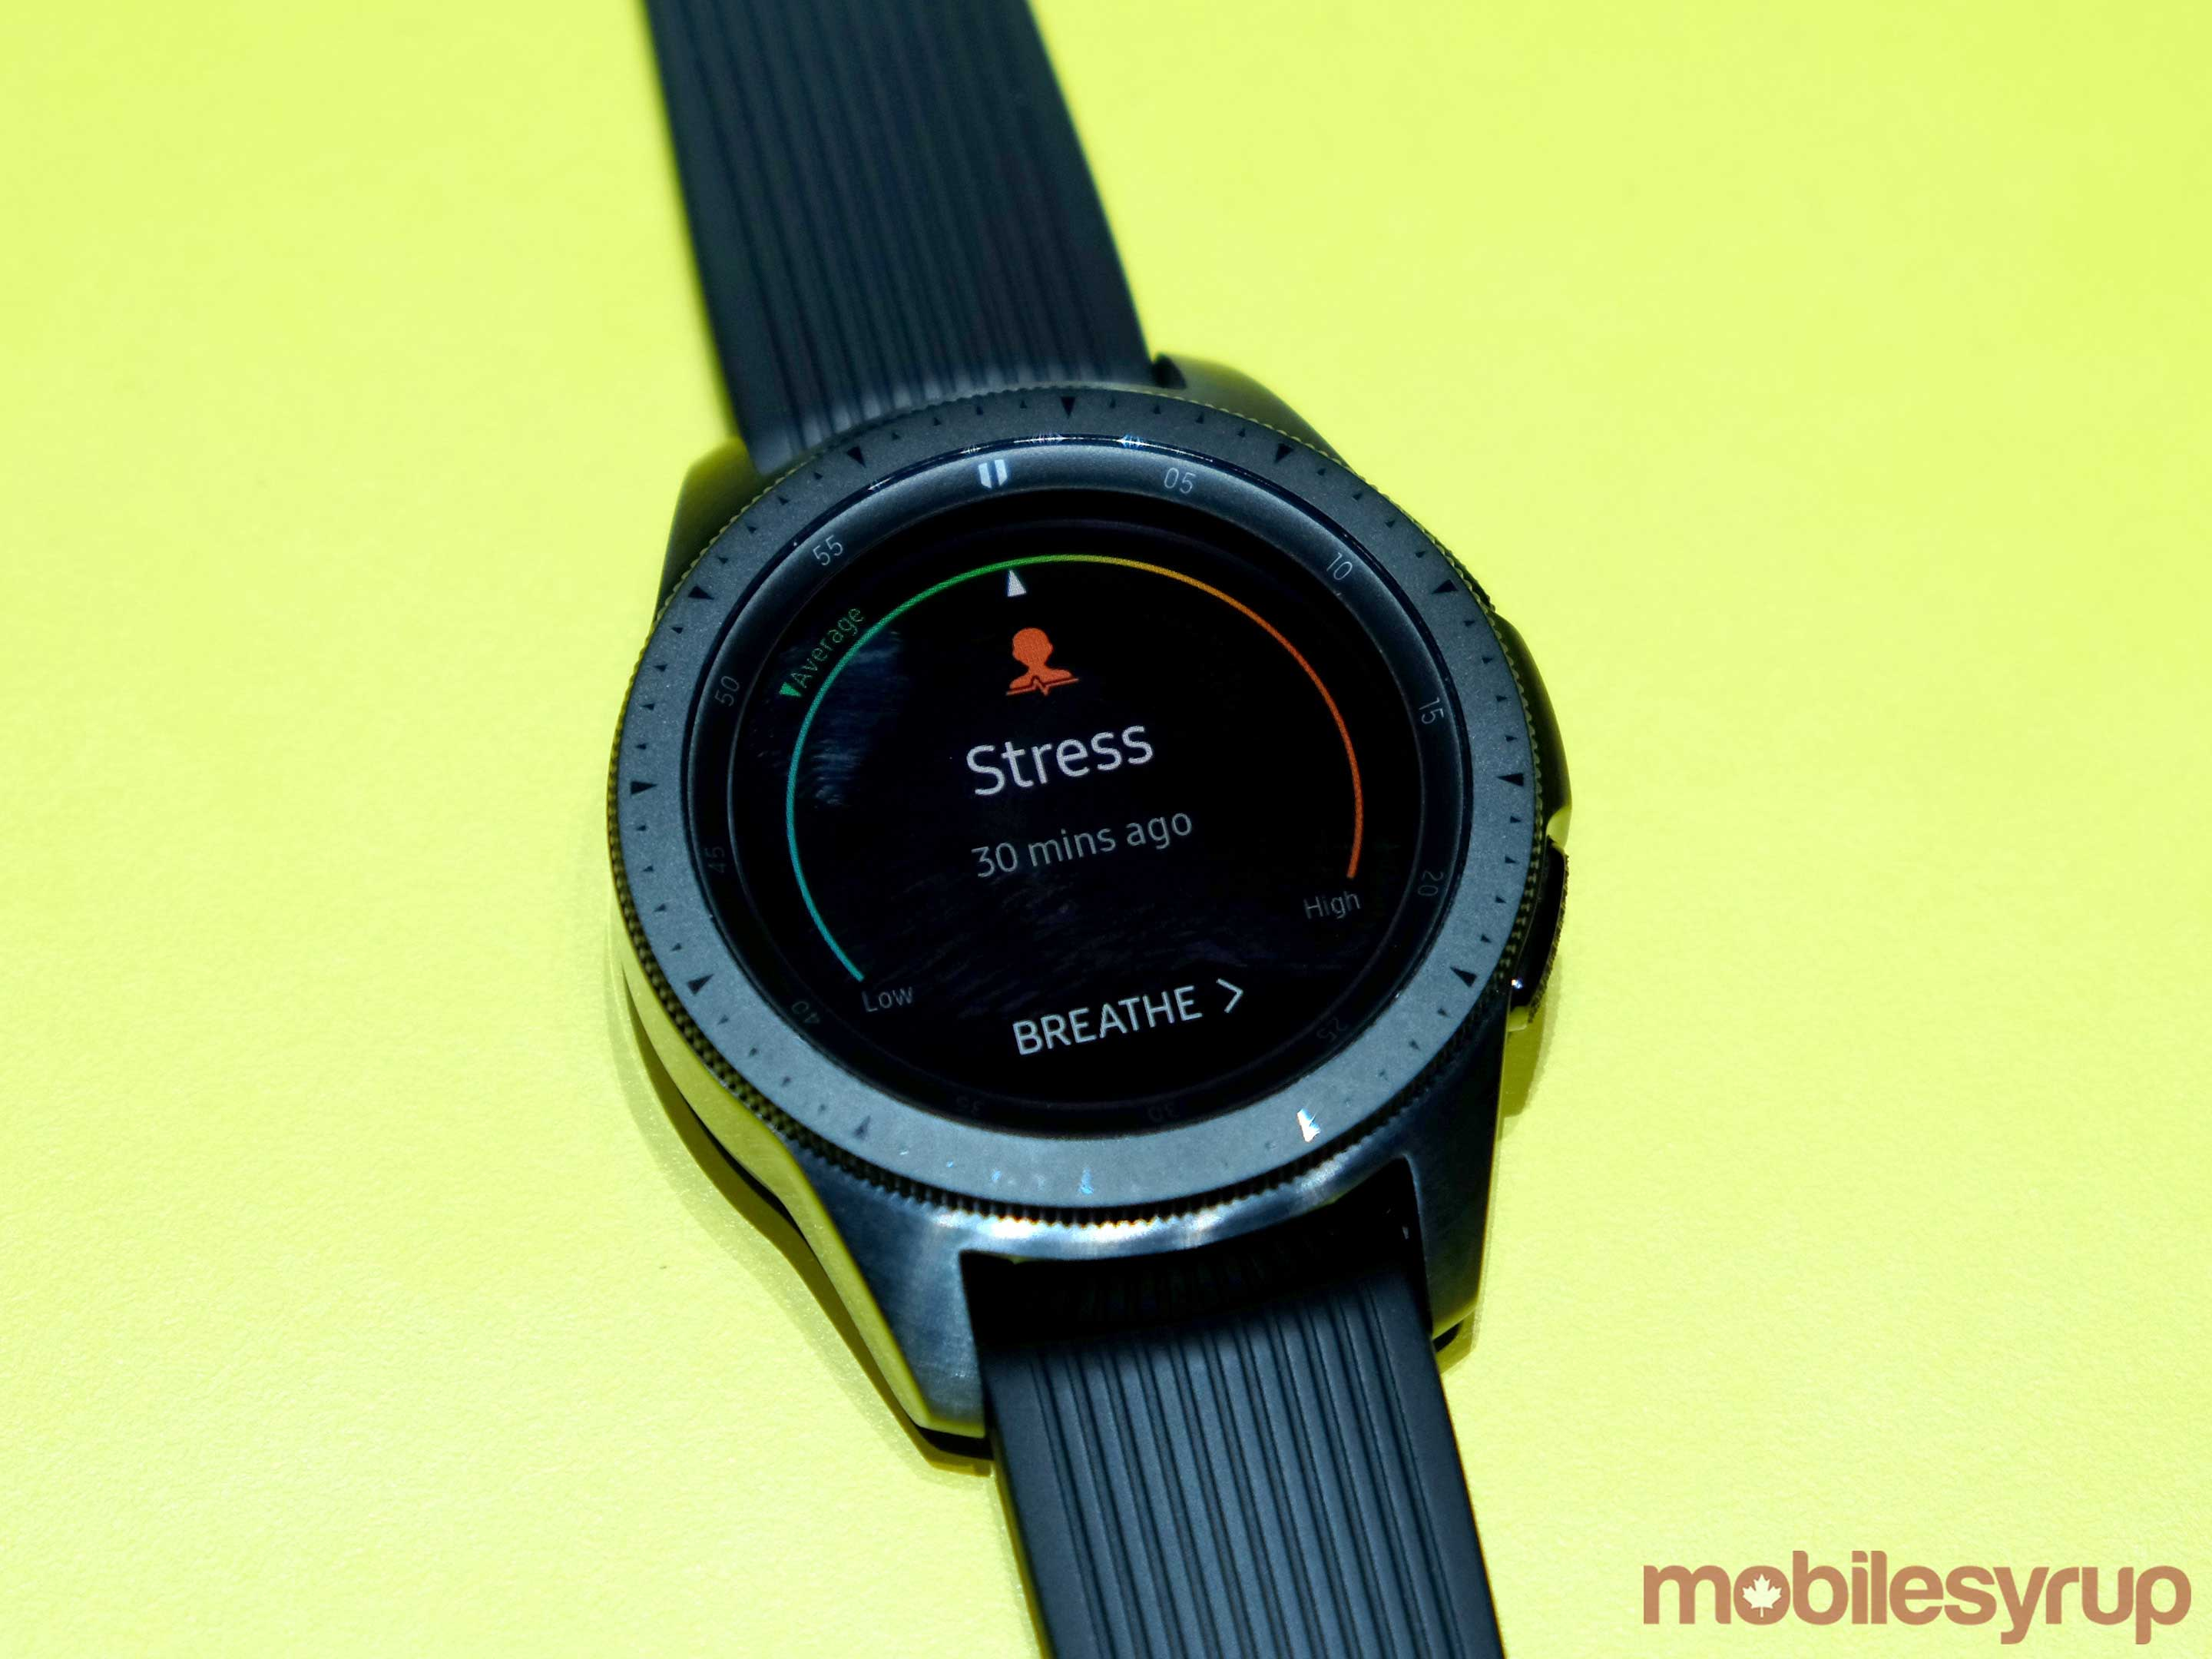 Galaxy Watch stress measure